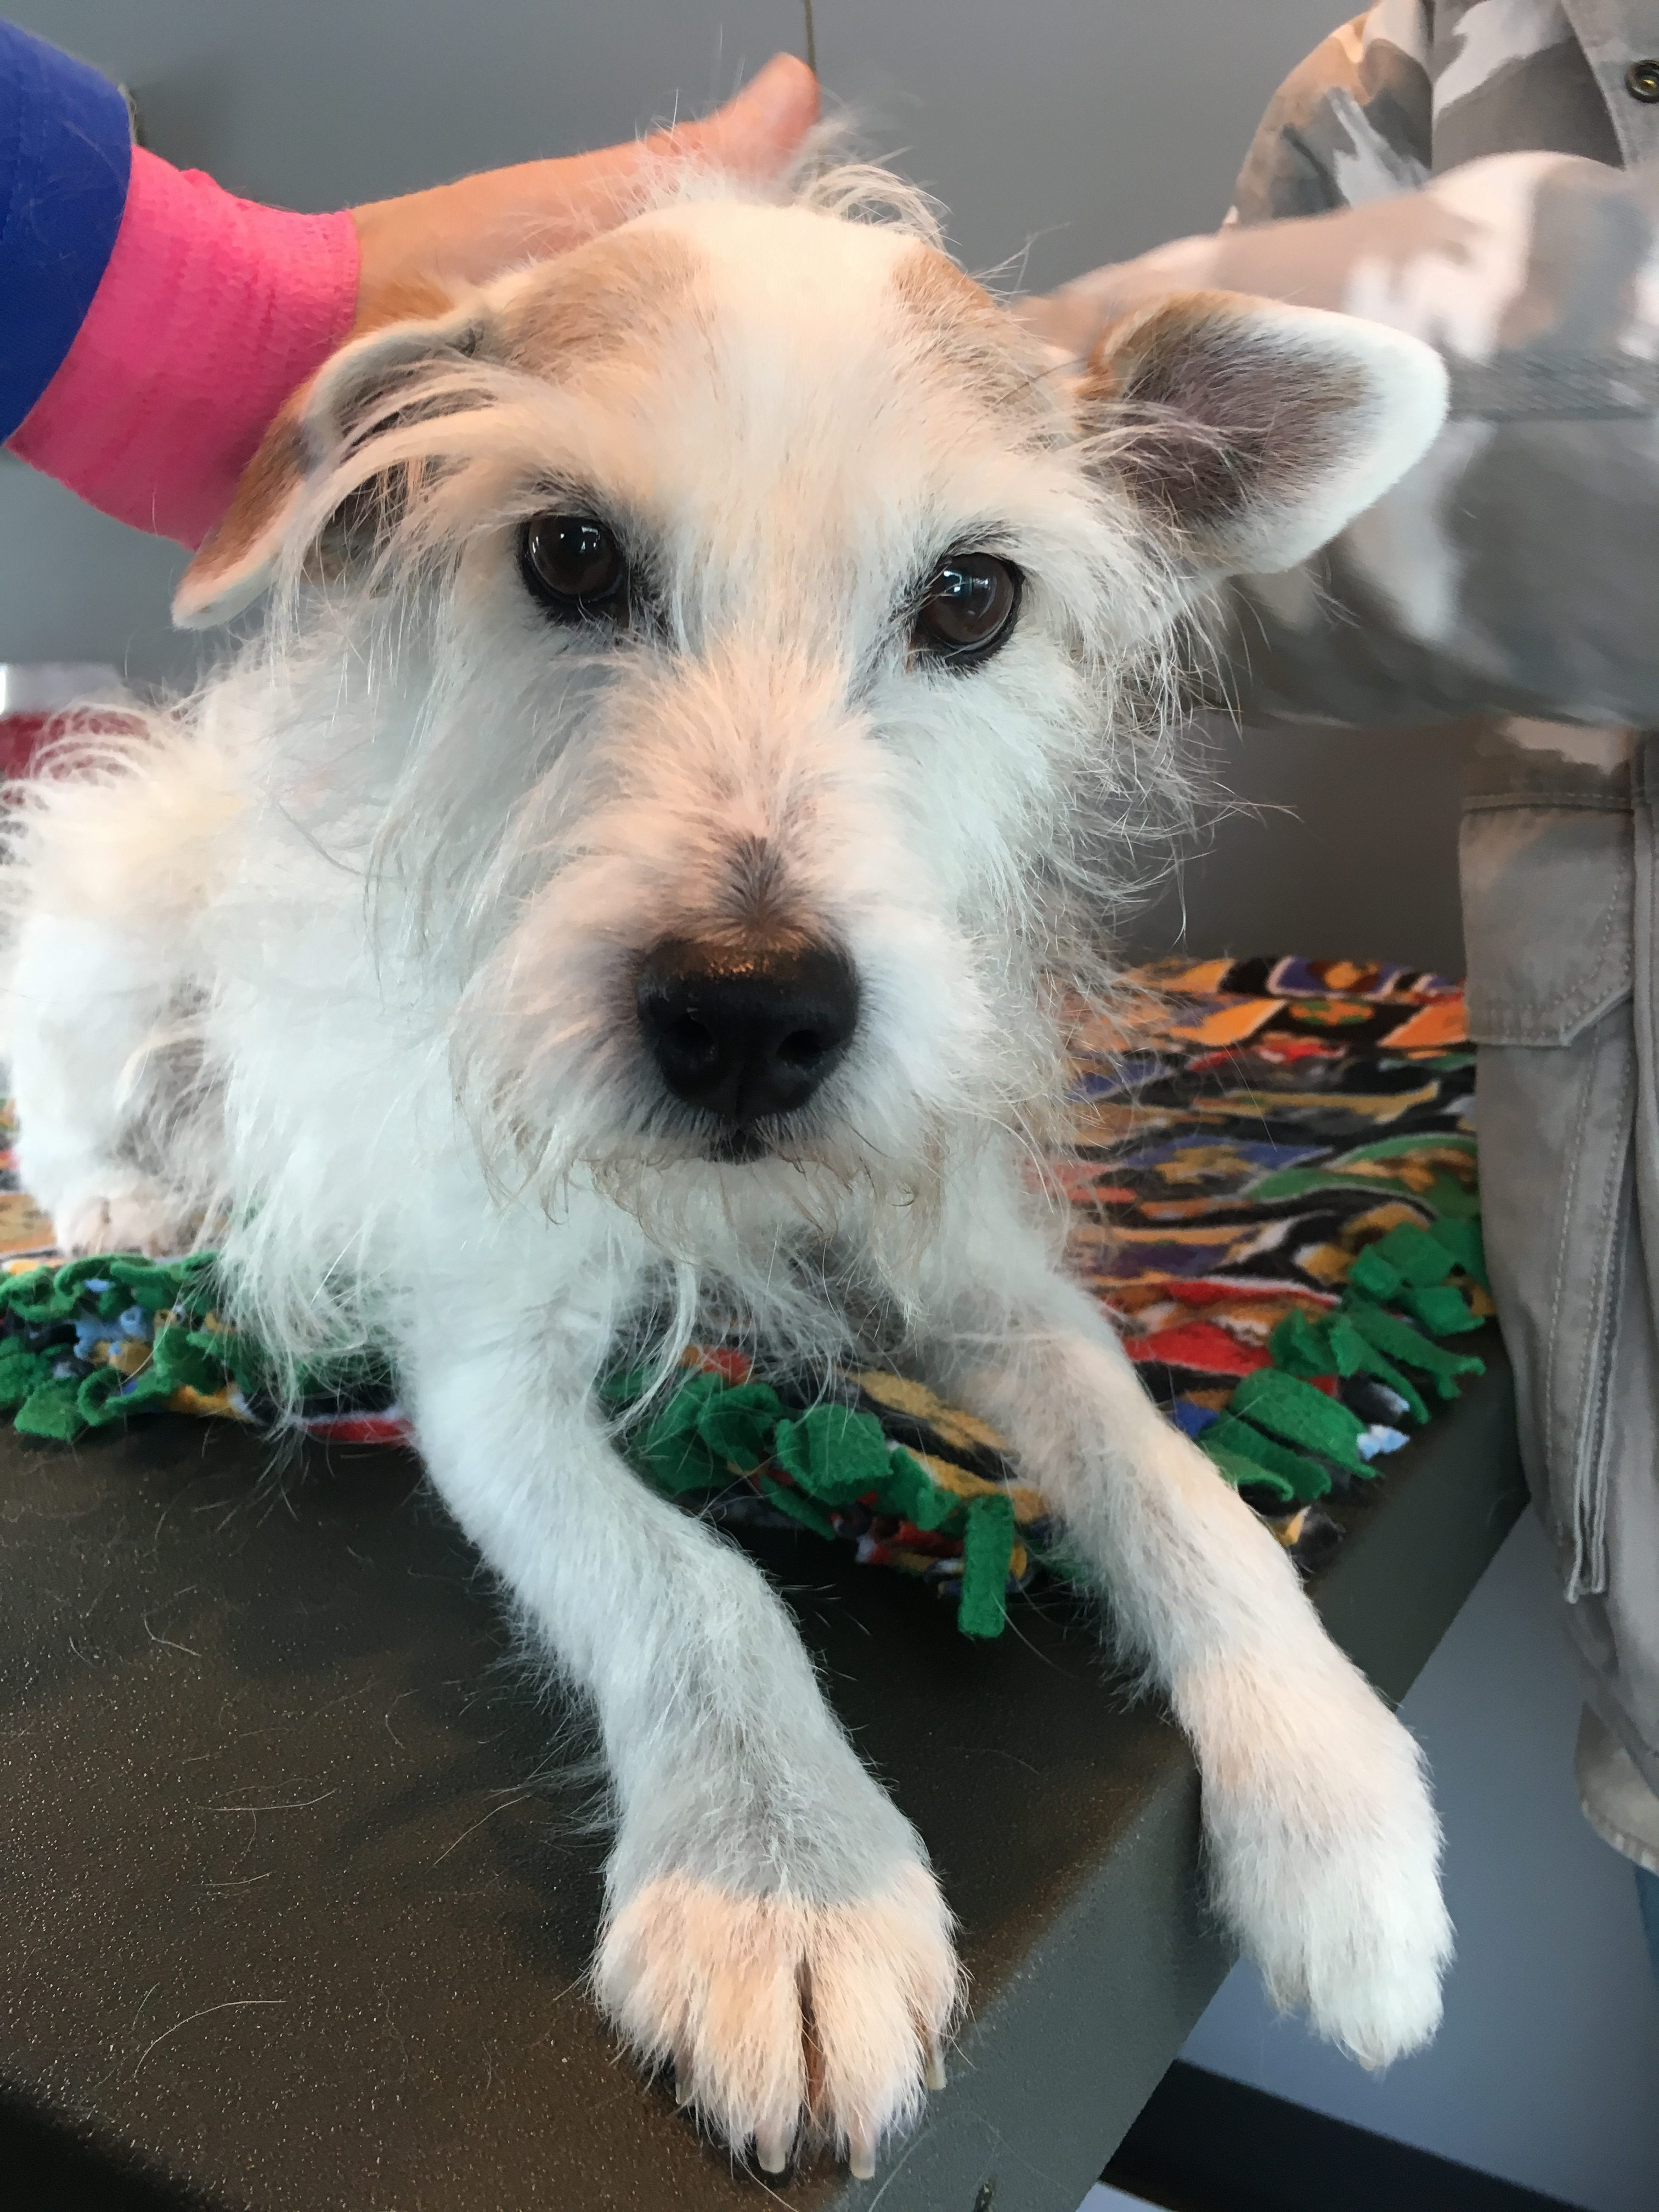 Urinary Incontinence and Arthritis in a 13 Year Old Jack Russell Terrier